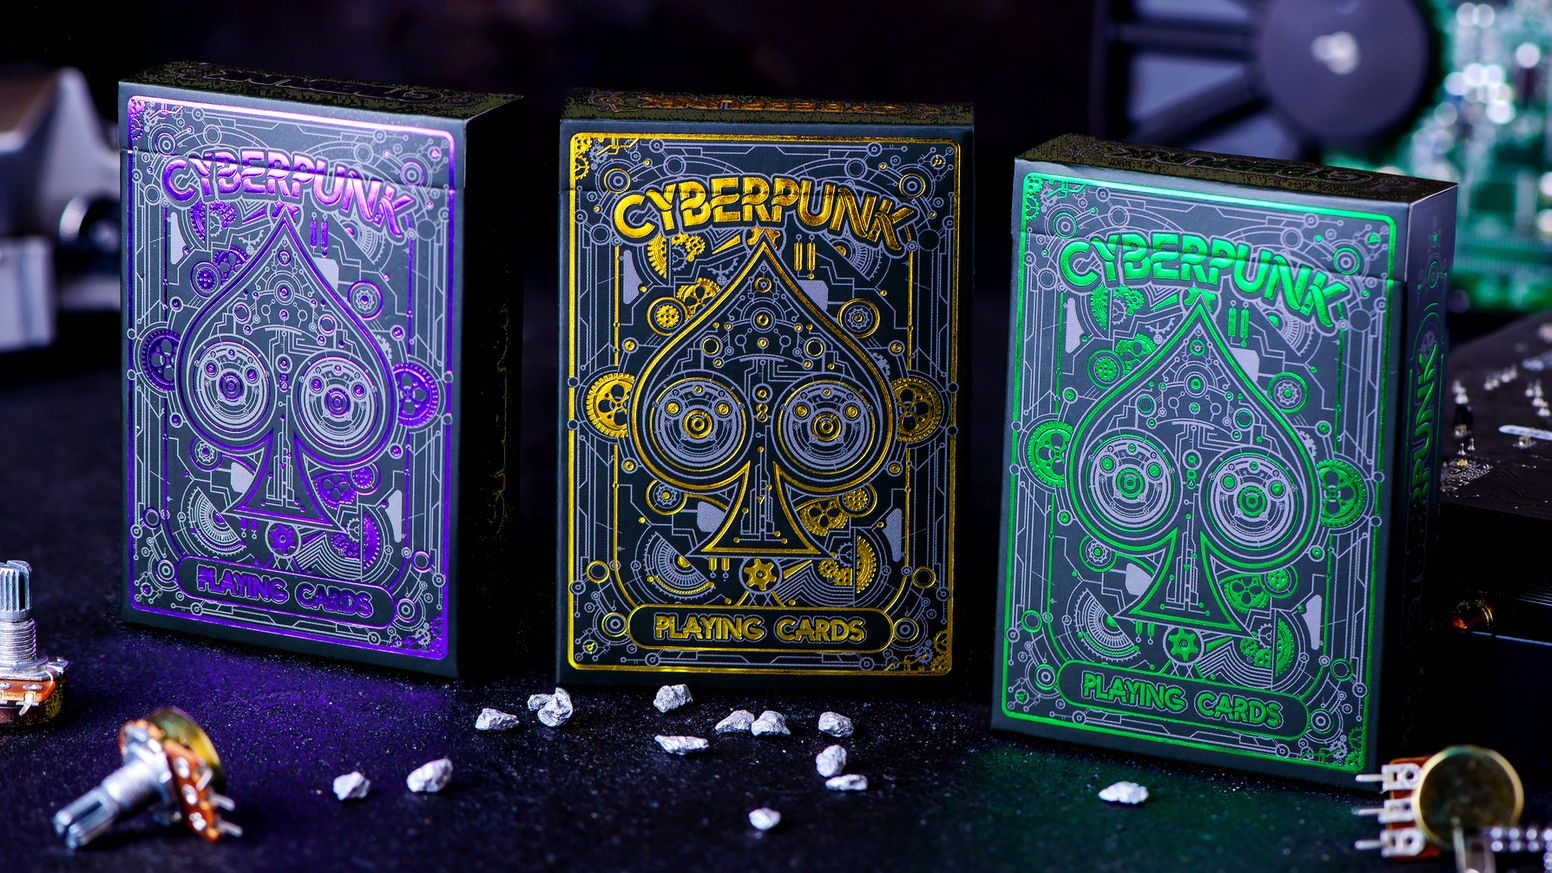 Cyberpunk Playing Cards – Futuristic Sci-Fi Designs Combining Lowlife and High Tech.